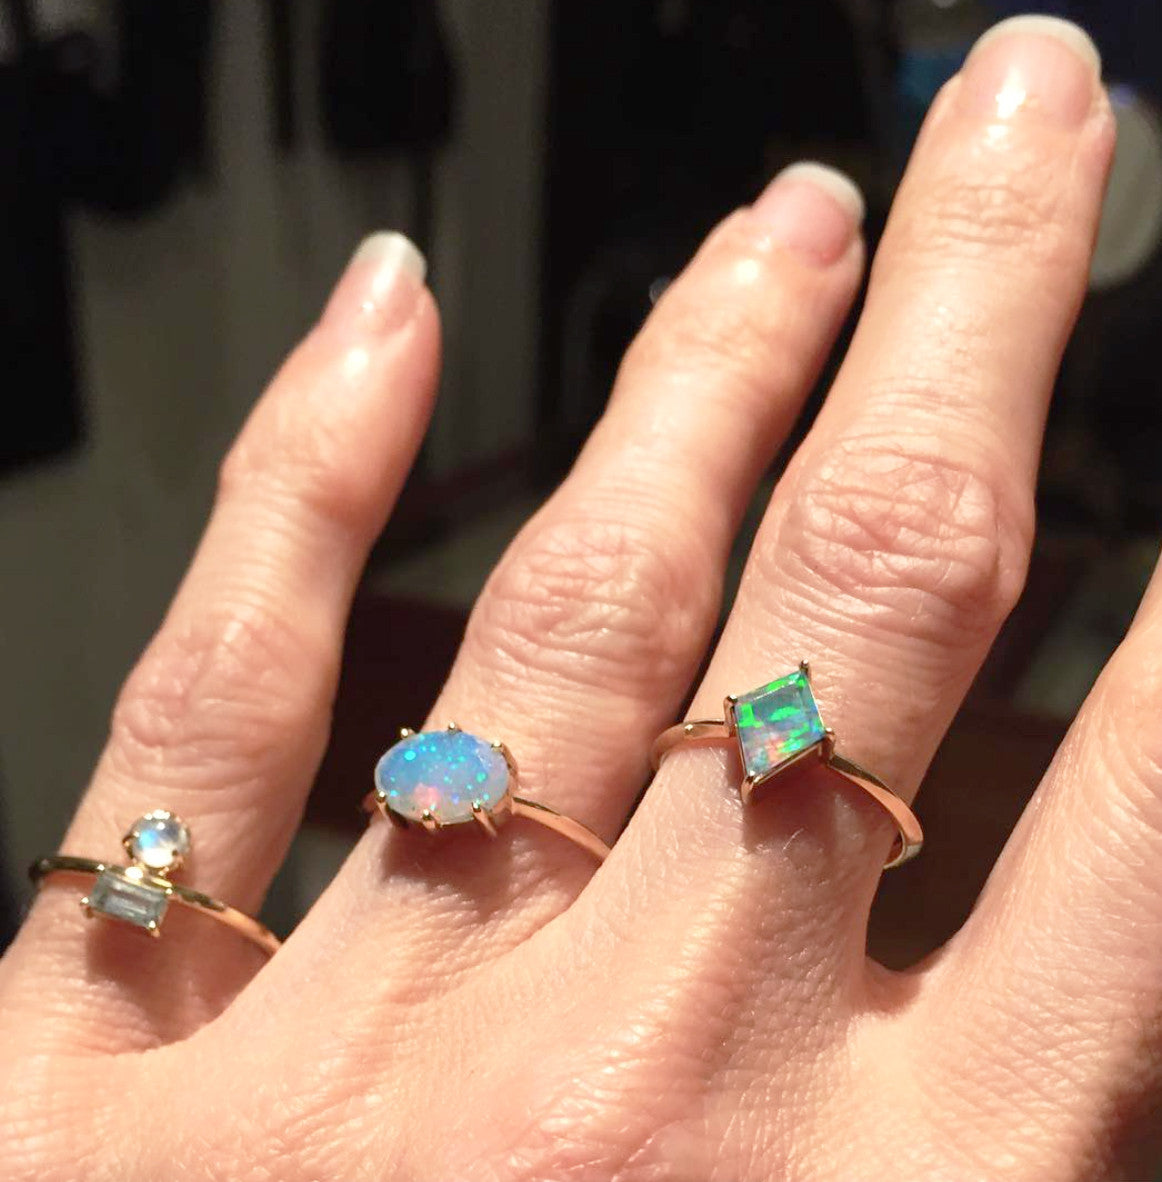 Opal Oval Shape Ring Wendy Nichol Fine Jewelry Designer 14k Gold